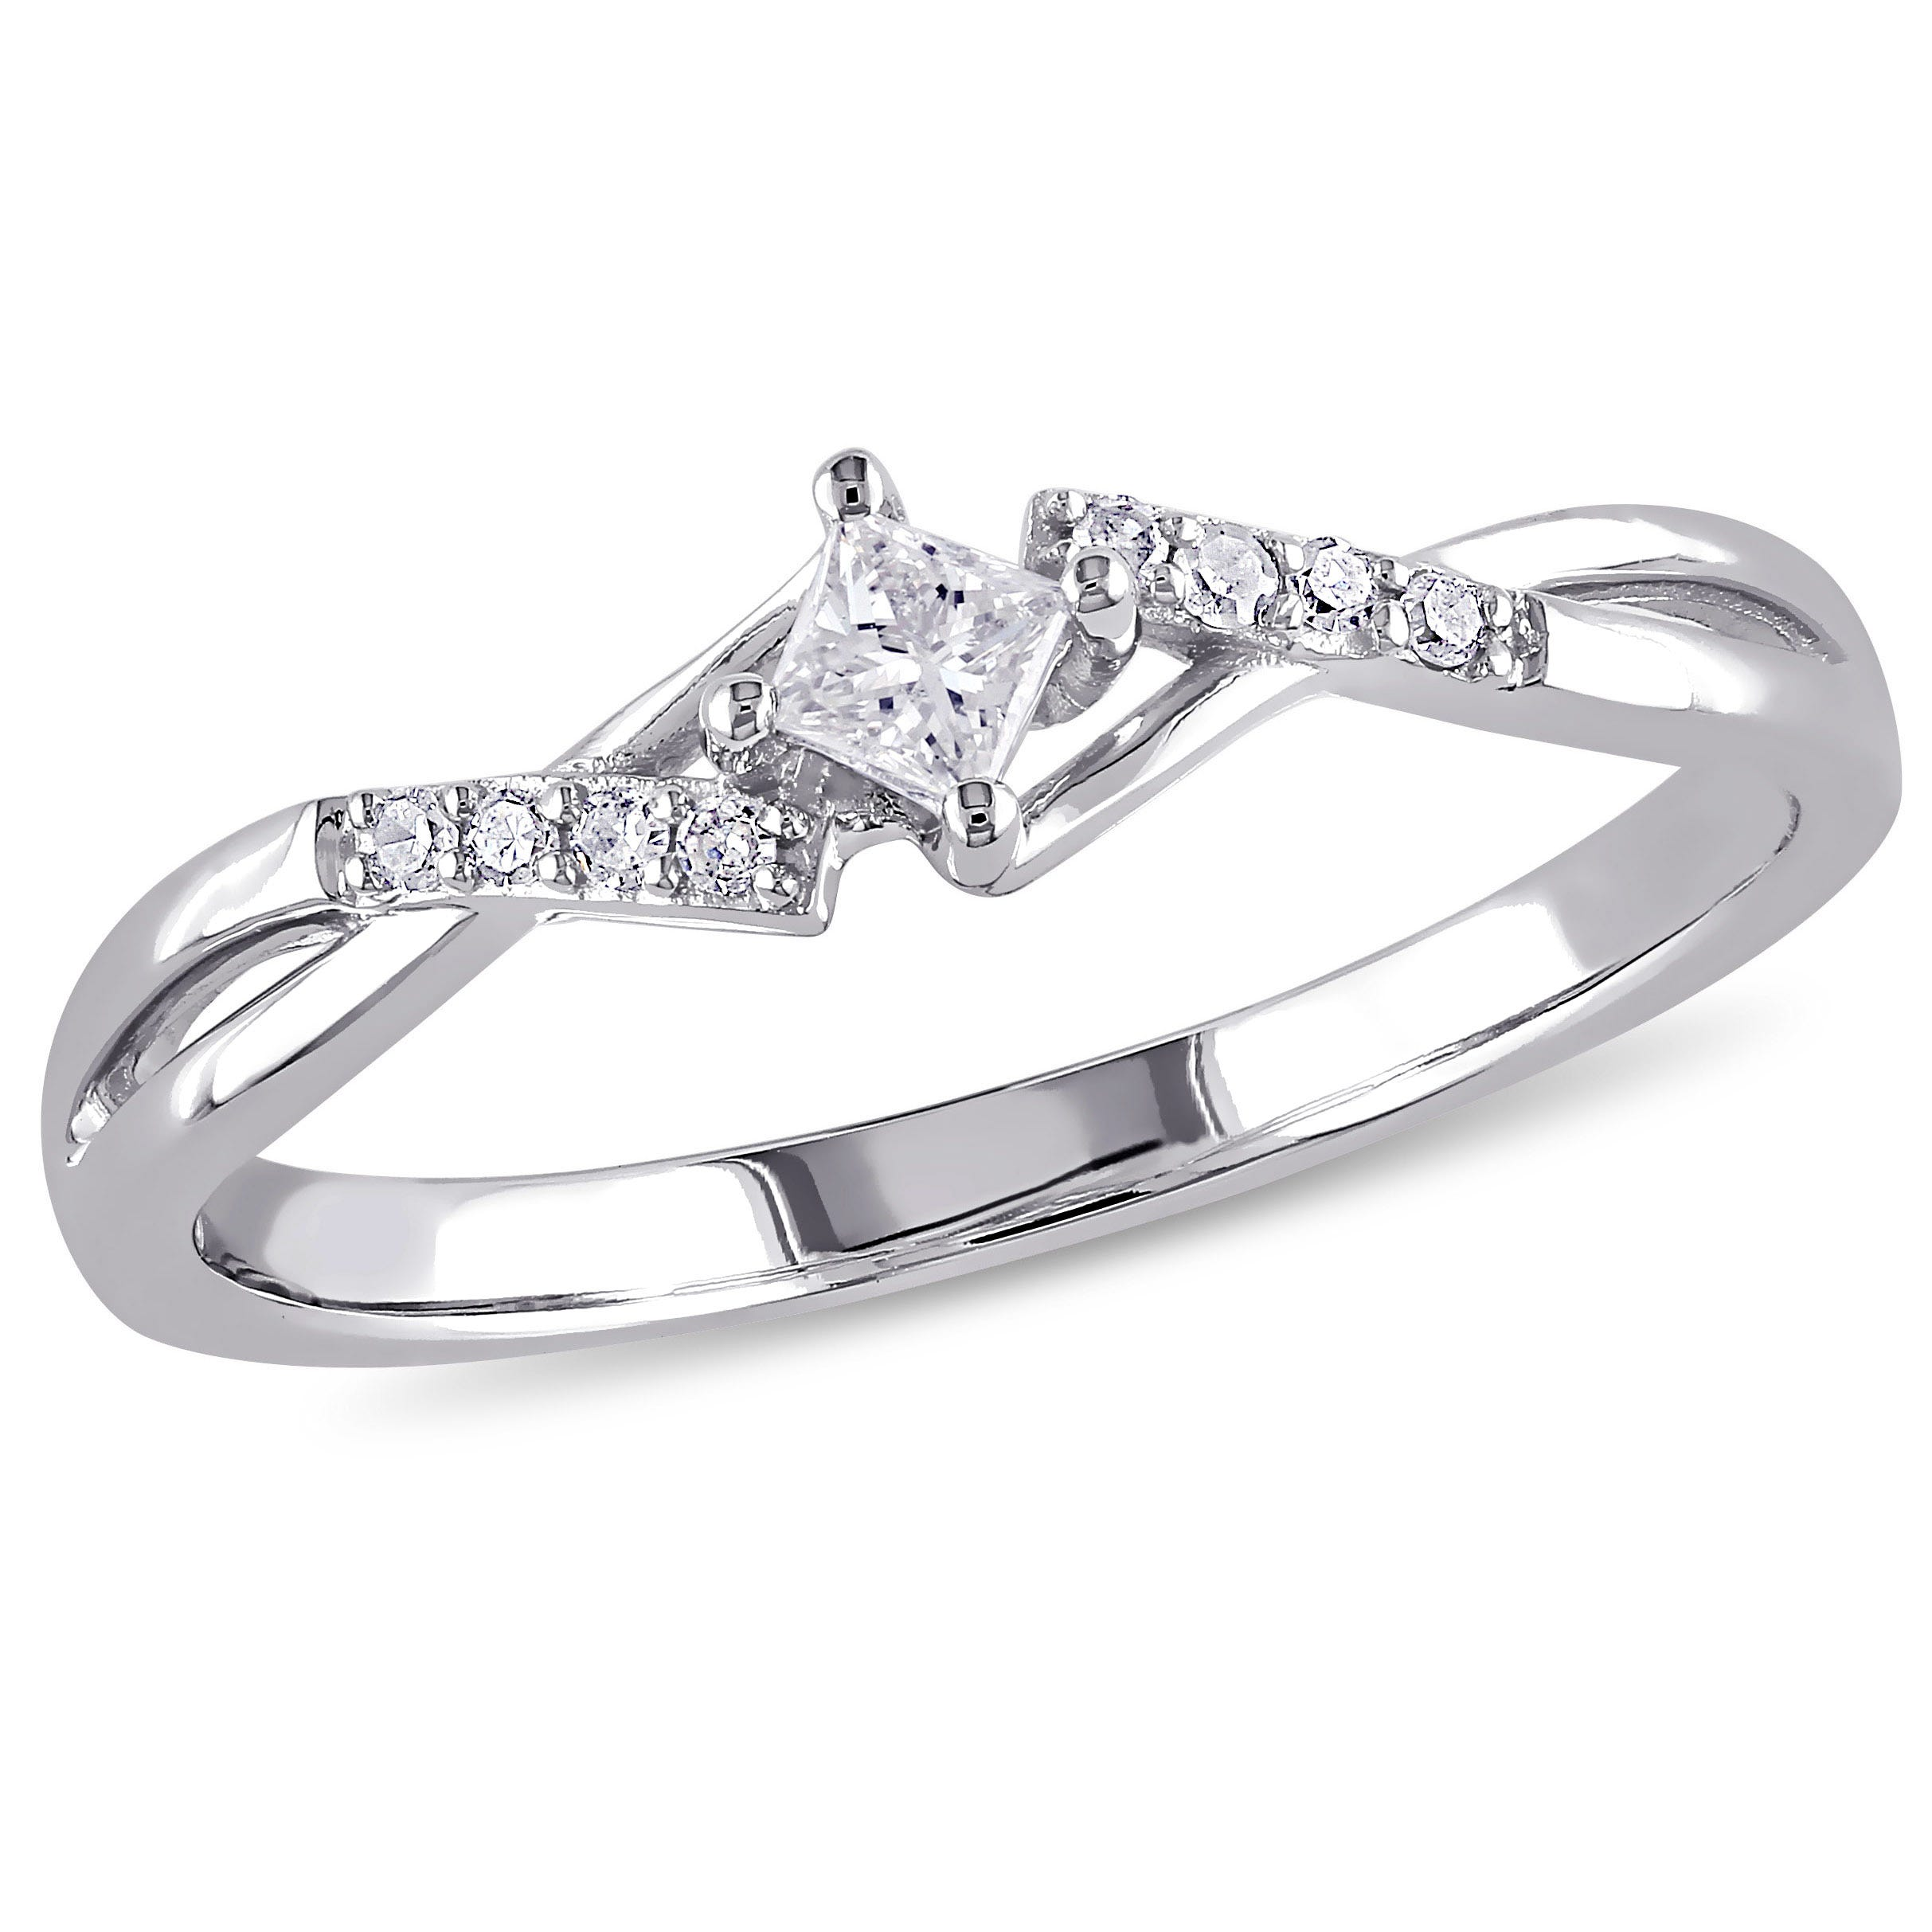 Princess & Round Cut Diamond Promise Ring 1/7ctw. in 10k White Gold